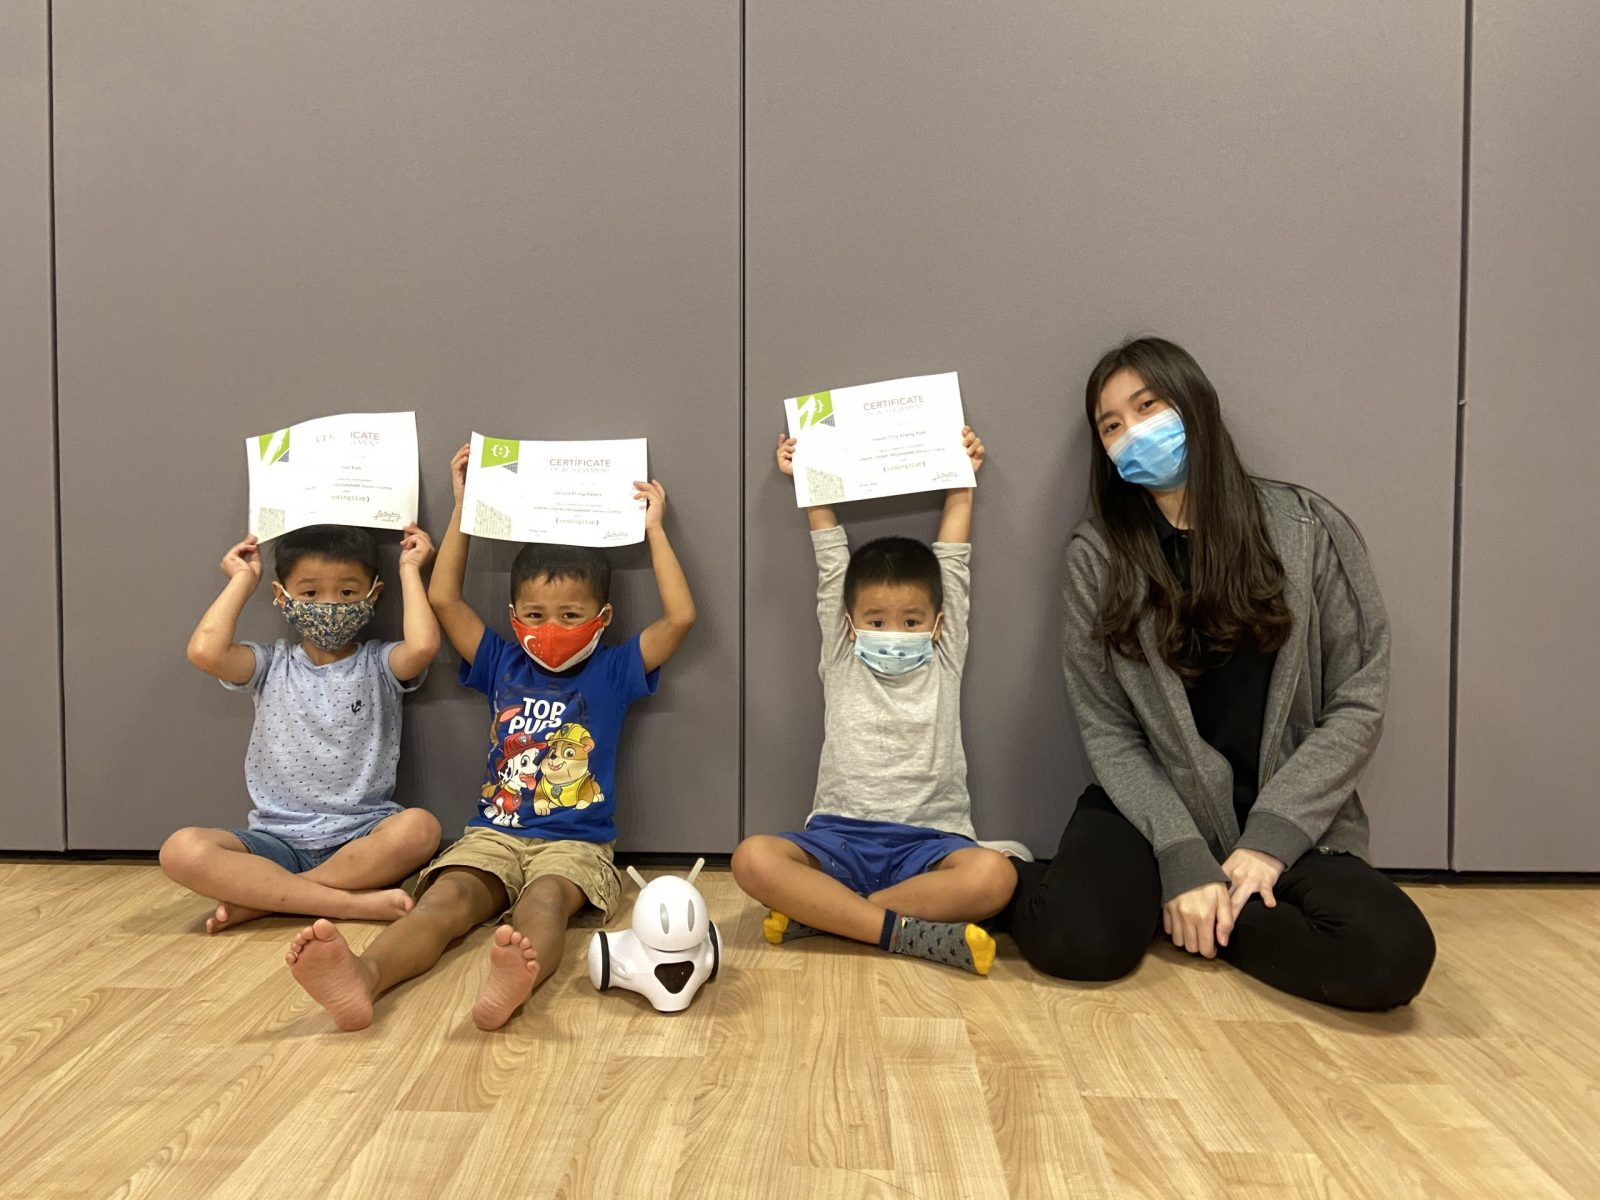 Our Junior Coders graduates proudly showing their certificates with their teacher and Photon robot